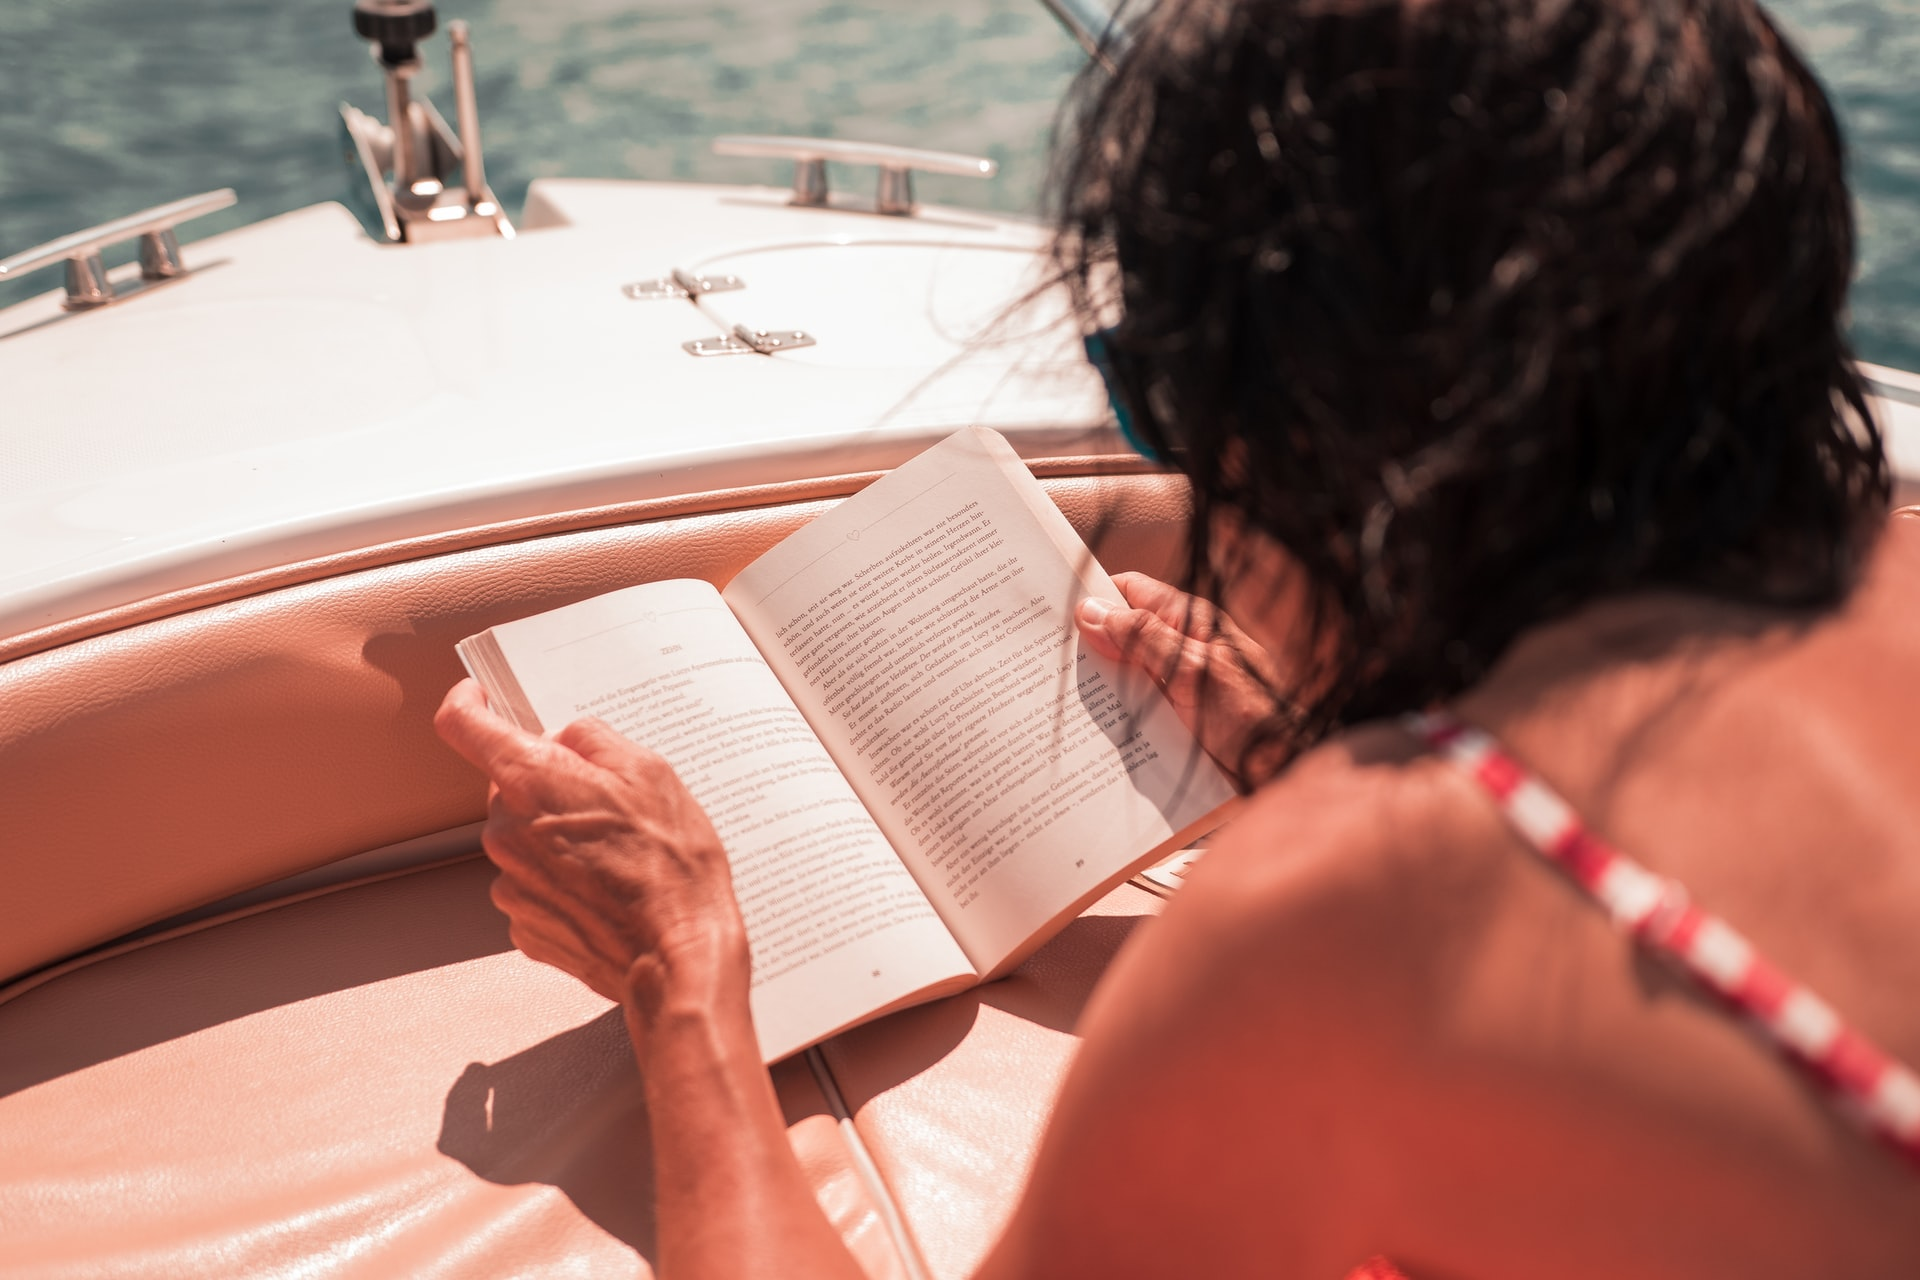 Our 10 Best Books for the Summer